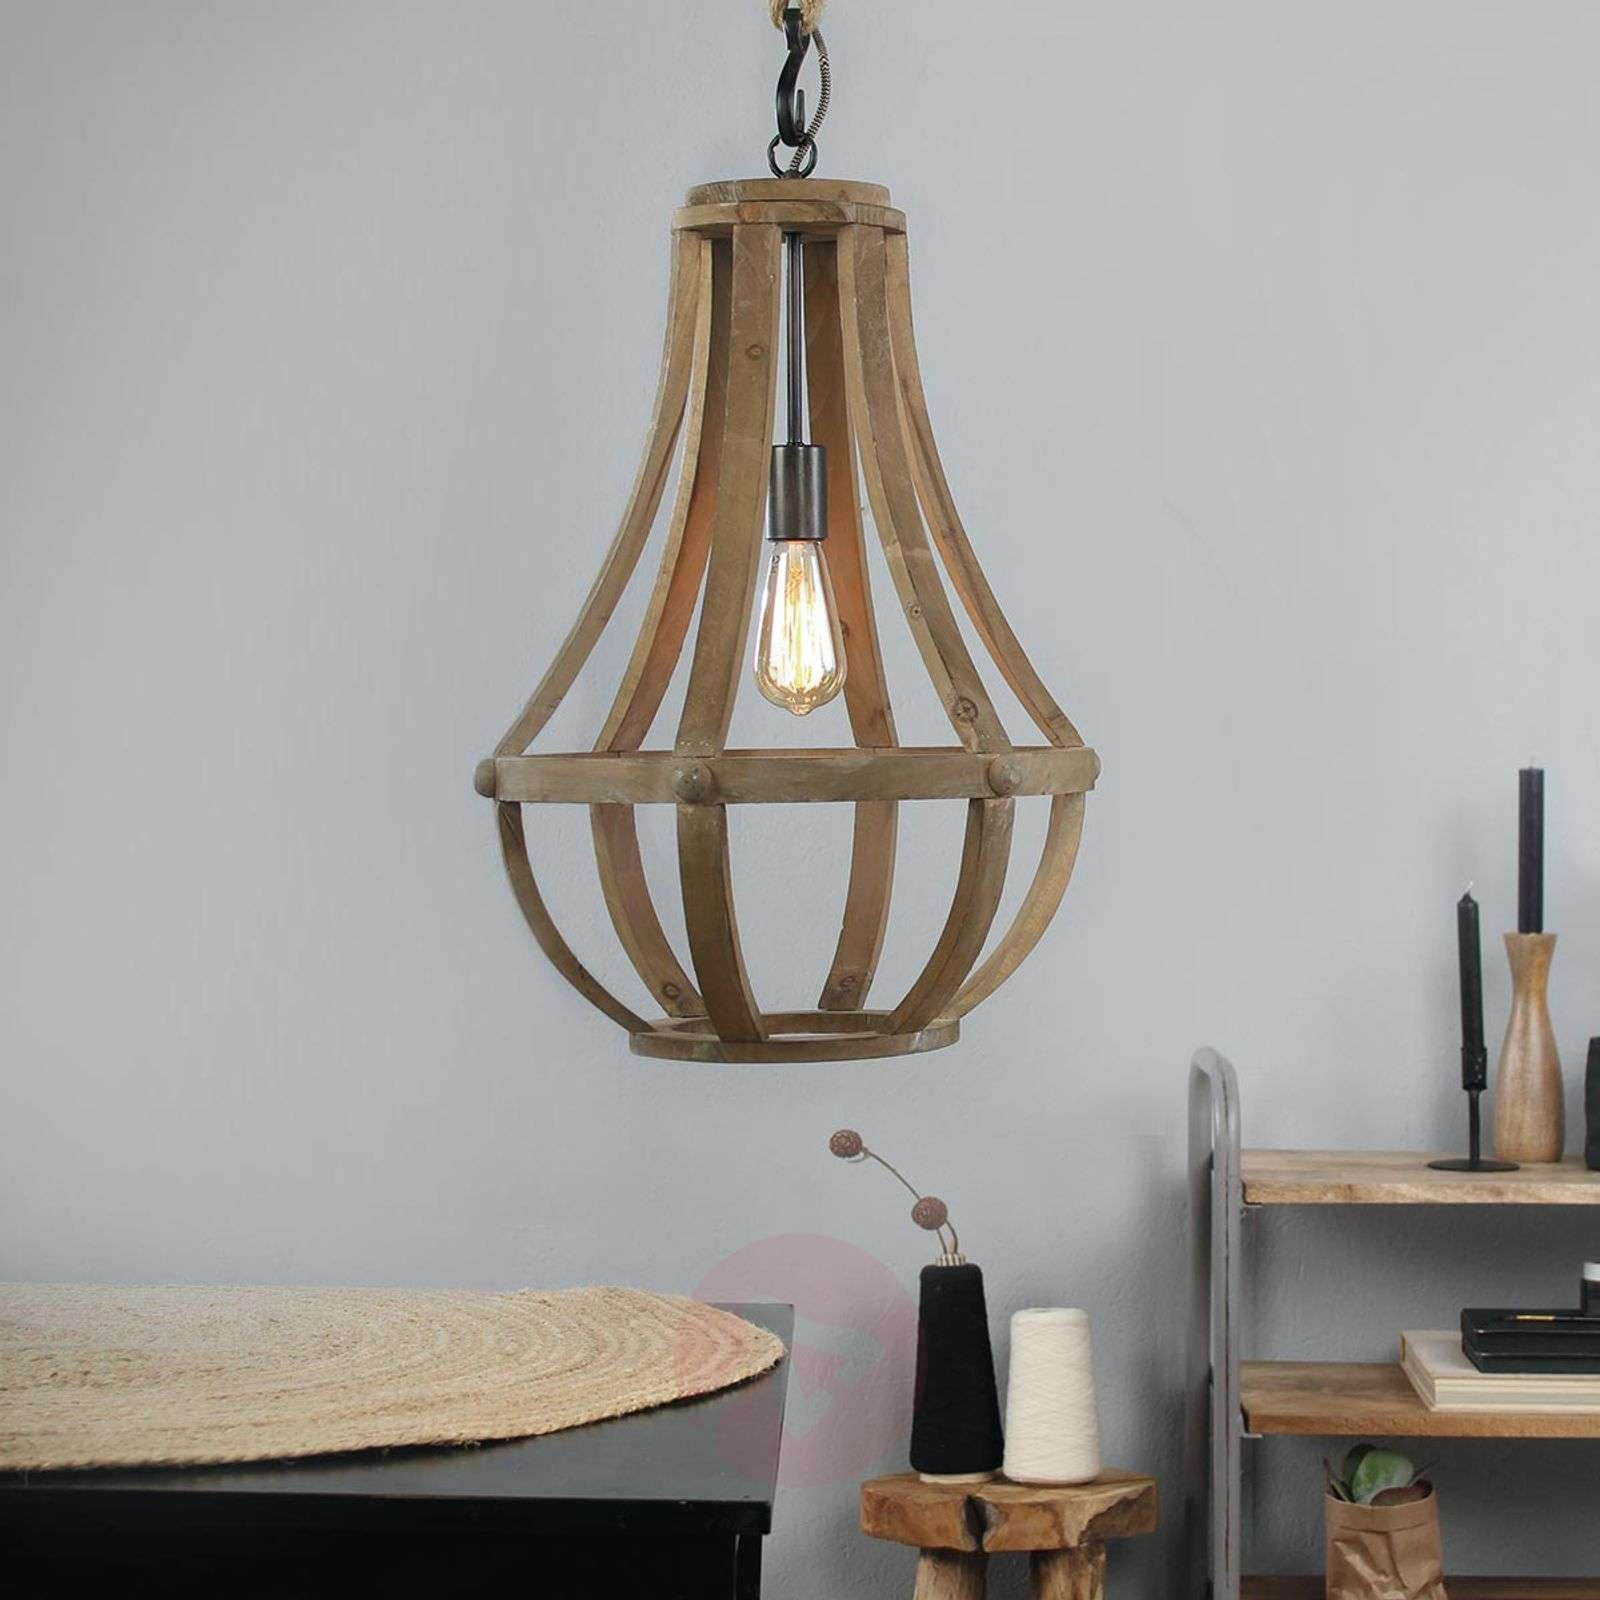 Wooden pendant light Liberty Bell-8509776-01